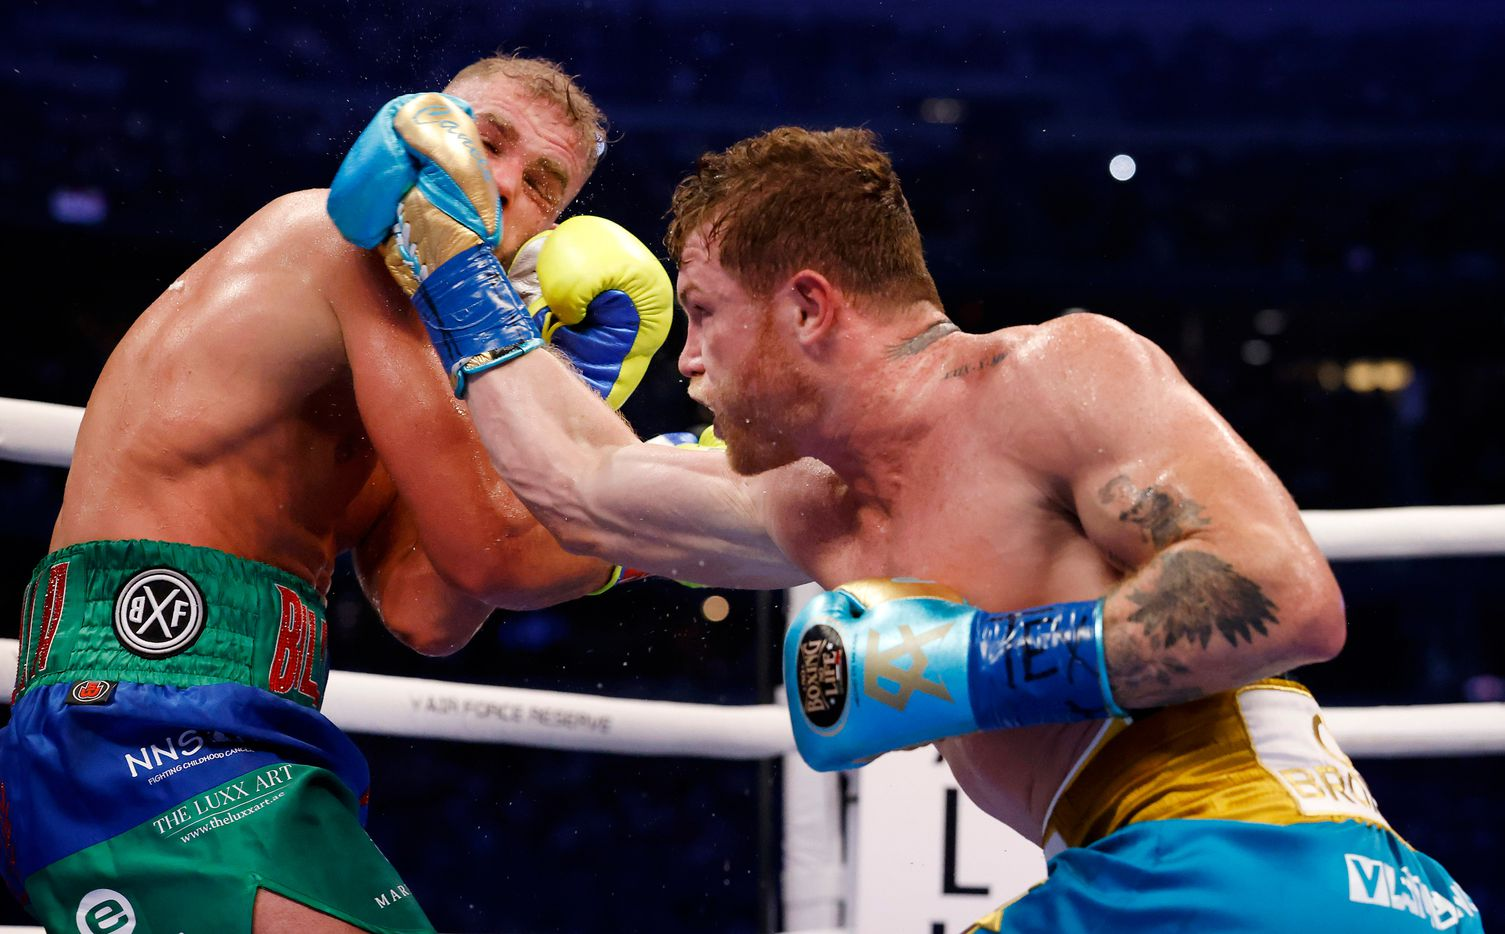 Boxer Canelo Alvarez (right) lands a punch on Billy Joe Saunders during their super middleweight title fight at AT&T Stadium in Arlington, Saturday, May 8, 2021. Saunders couldn't go beyond the eighth round because he sustained an eye injury and could not see. (Tom Fox/The Dallas Morning News)